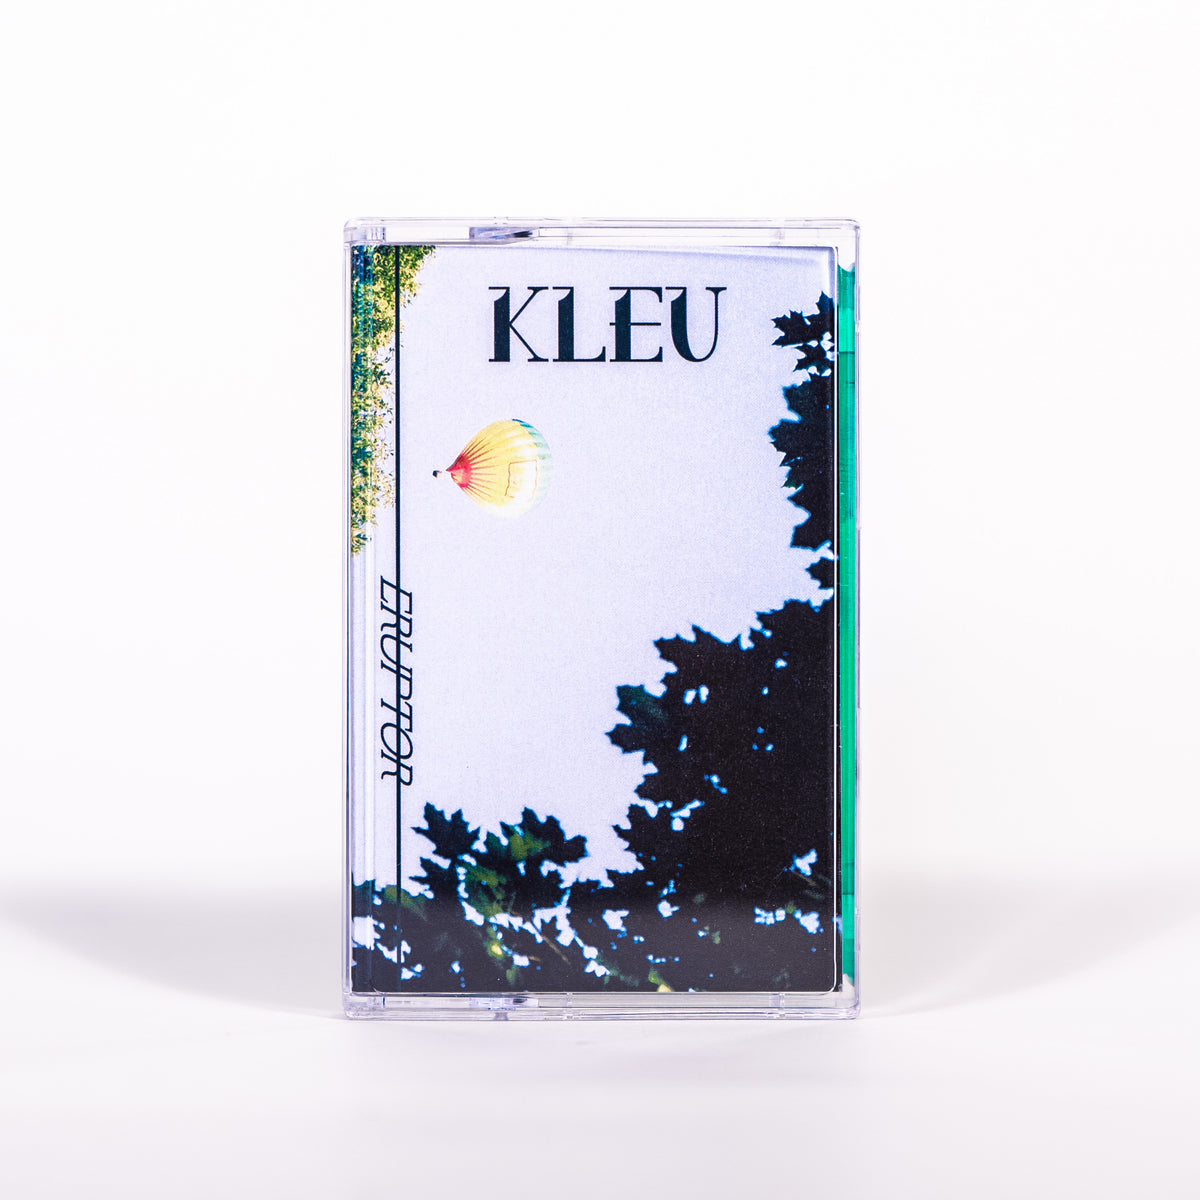 "STT003 - Kleu ""Eruptor"" - CS/Digital - Spacetime Tapes 2019"